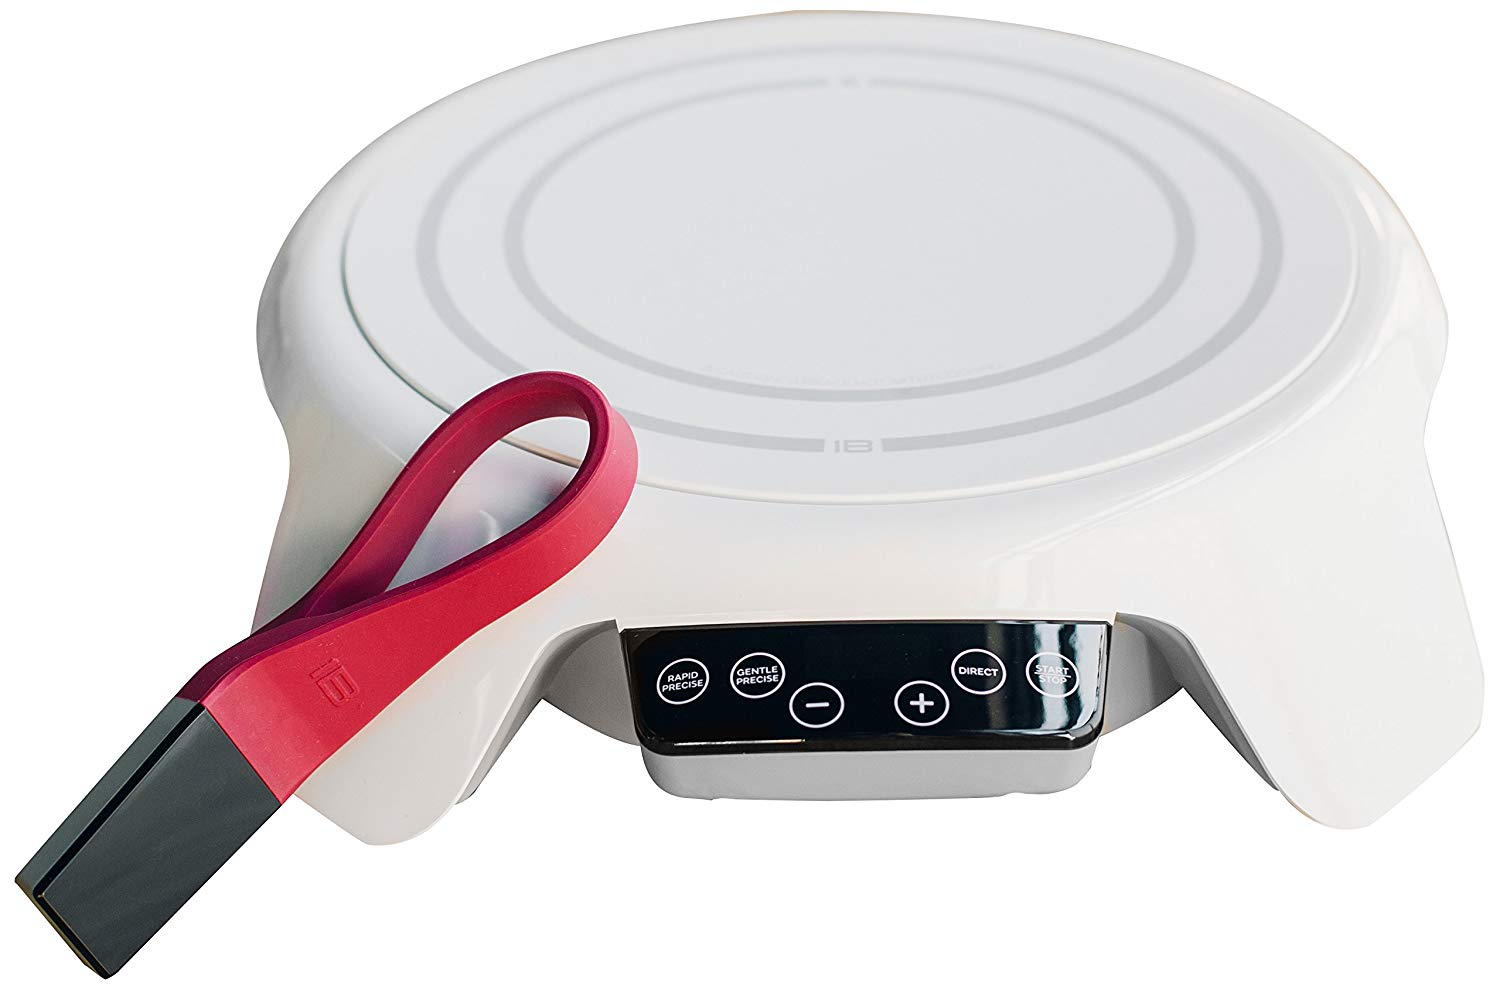 Paragon Induction Cooking Countertop Appliance